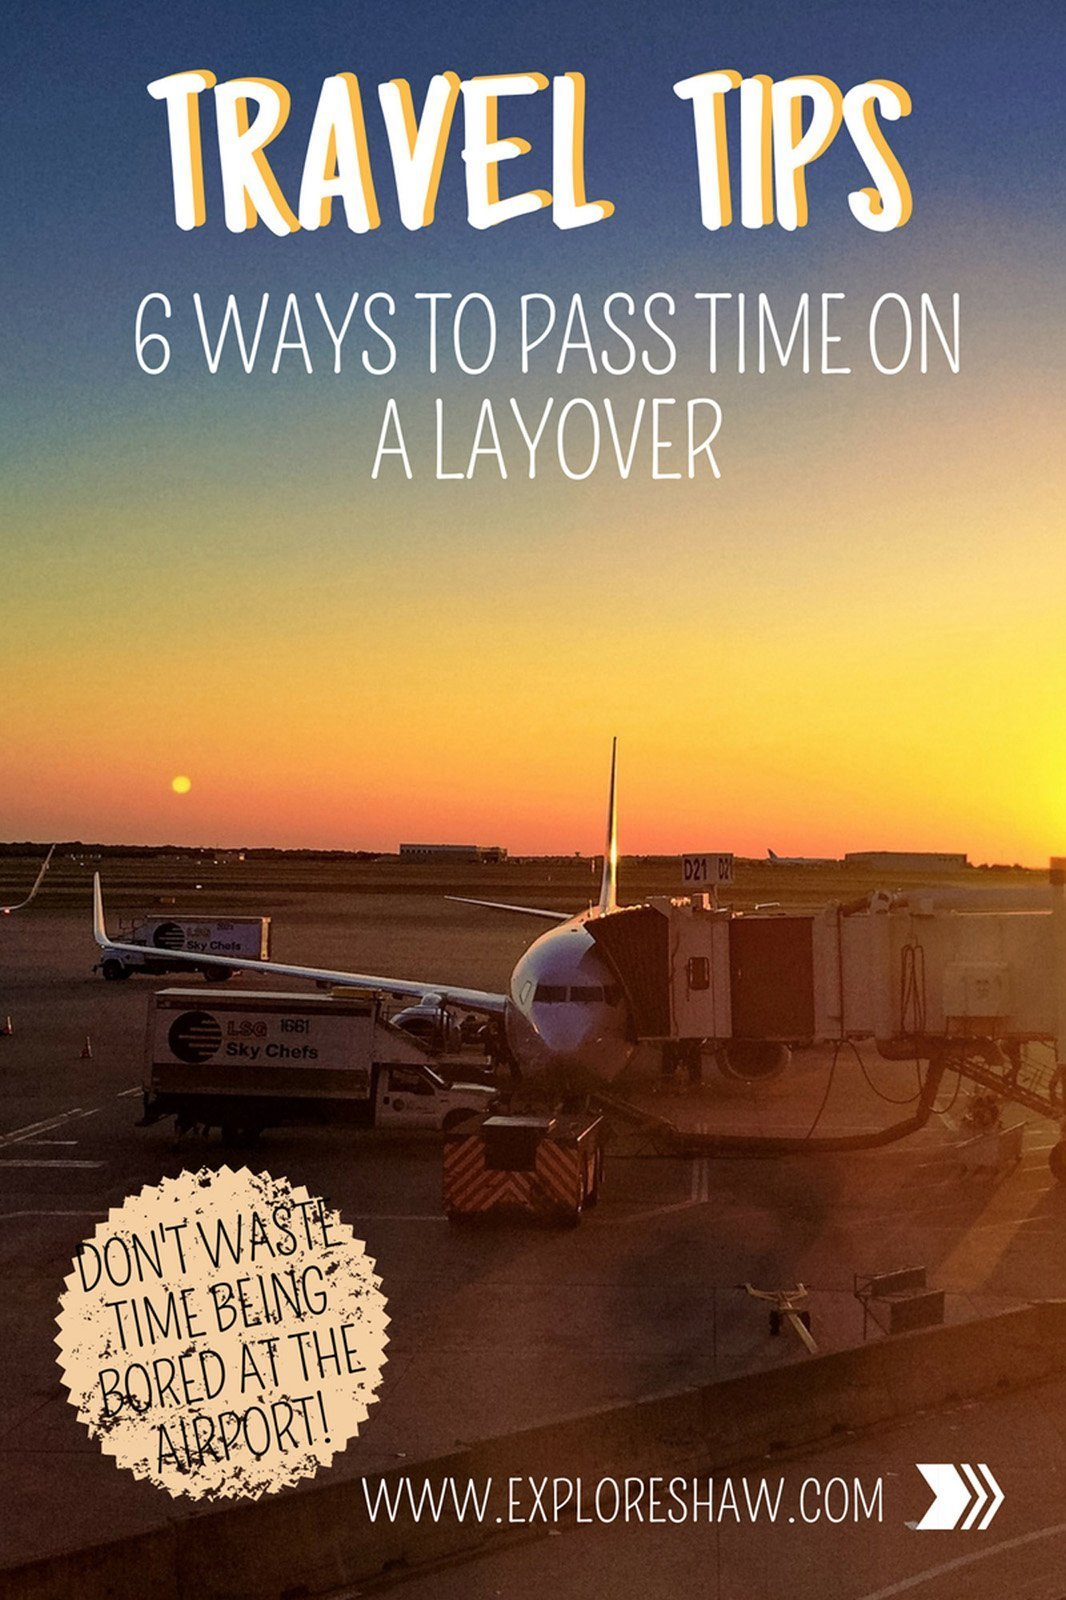 6 WAYS TO PASS TIME ON A LAYOVER